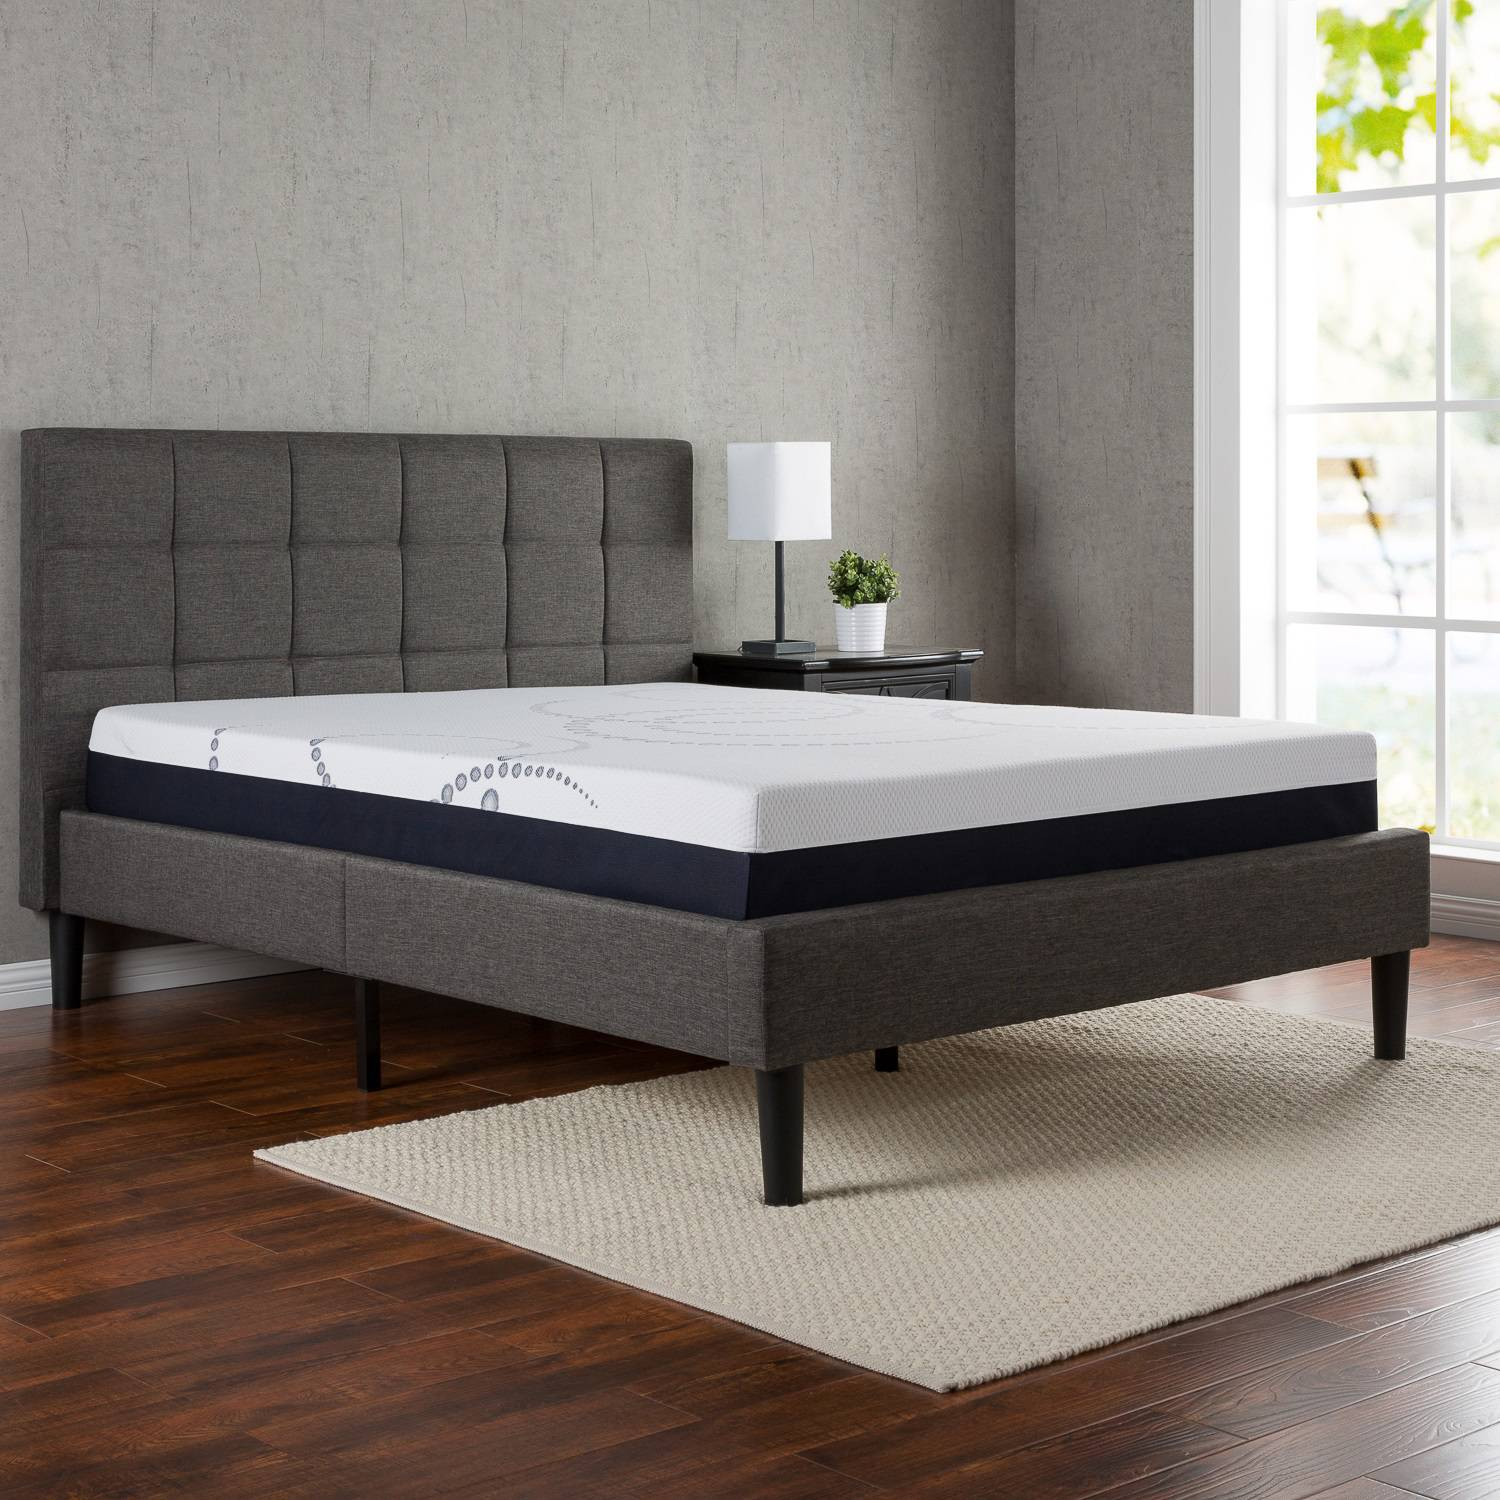 . Bedroom Furniture